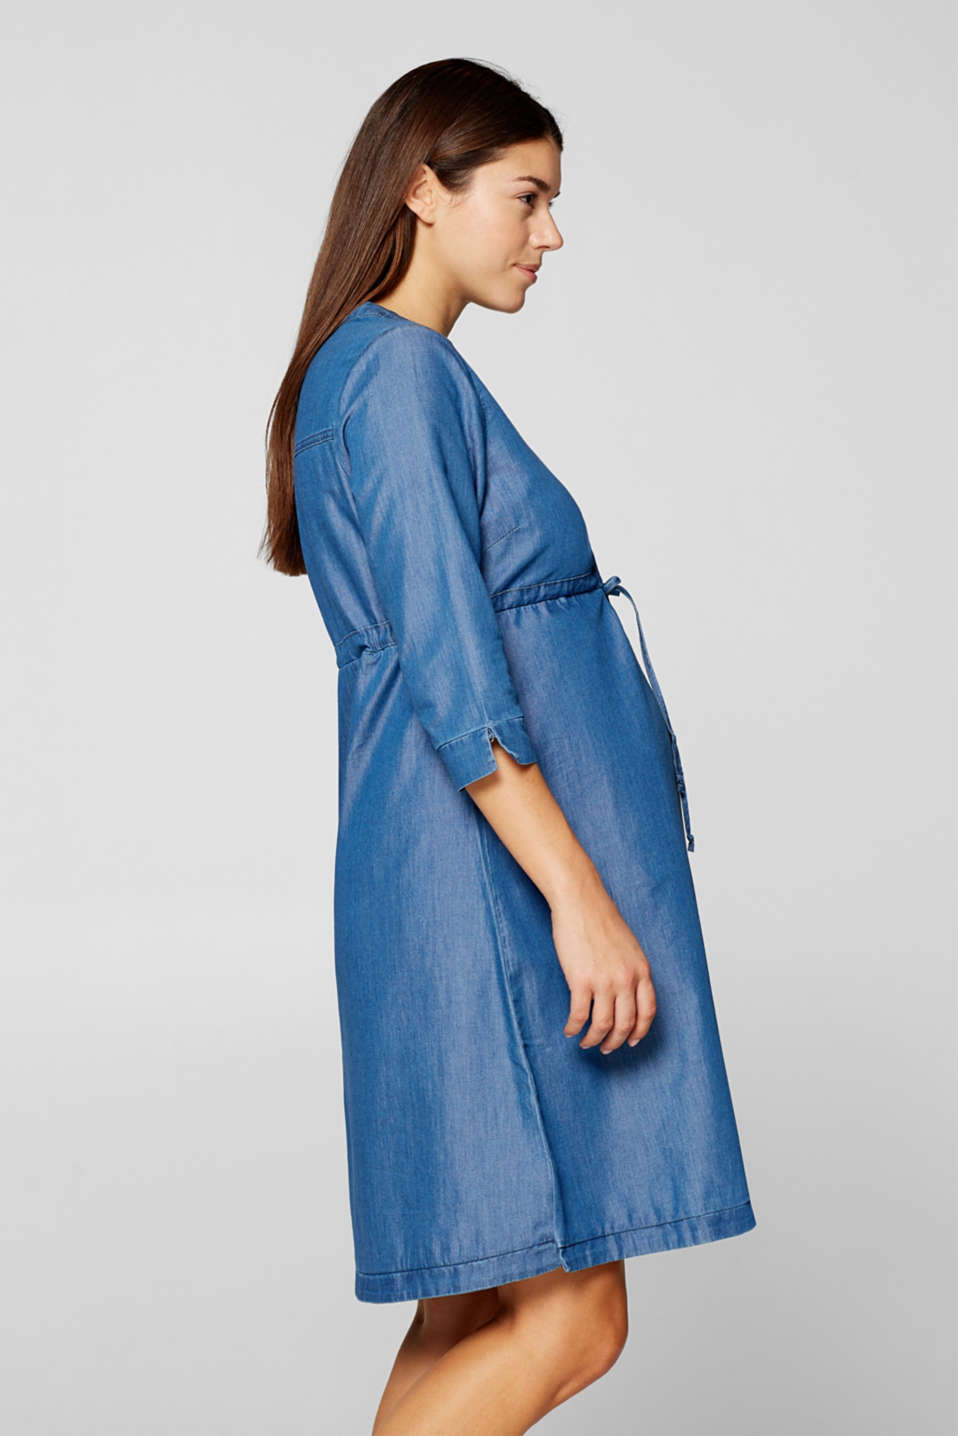 Esprit - Lightweight denim dress with nursing function